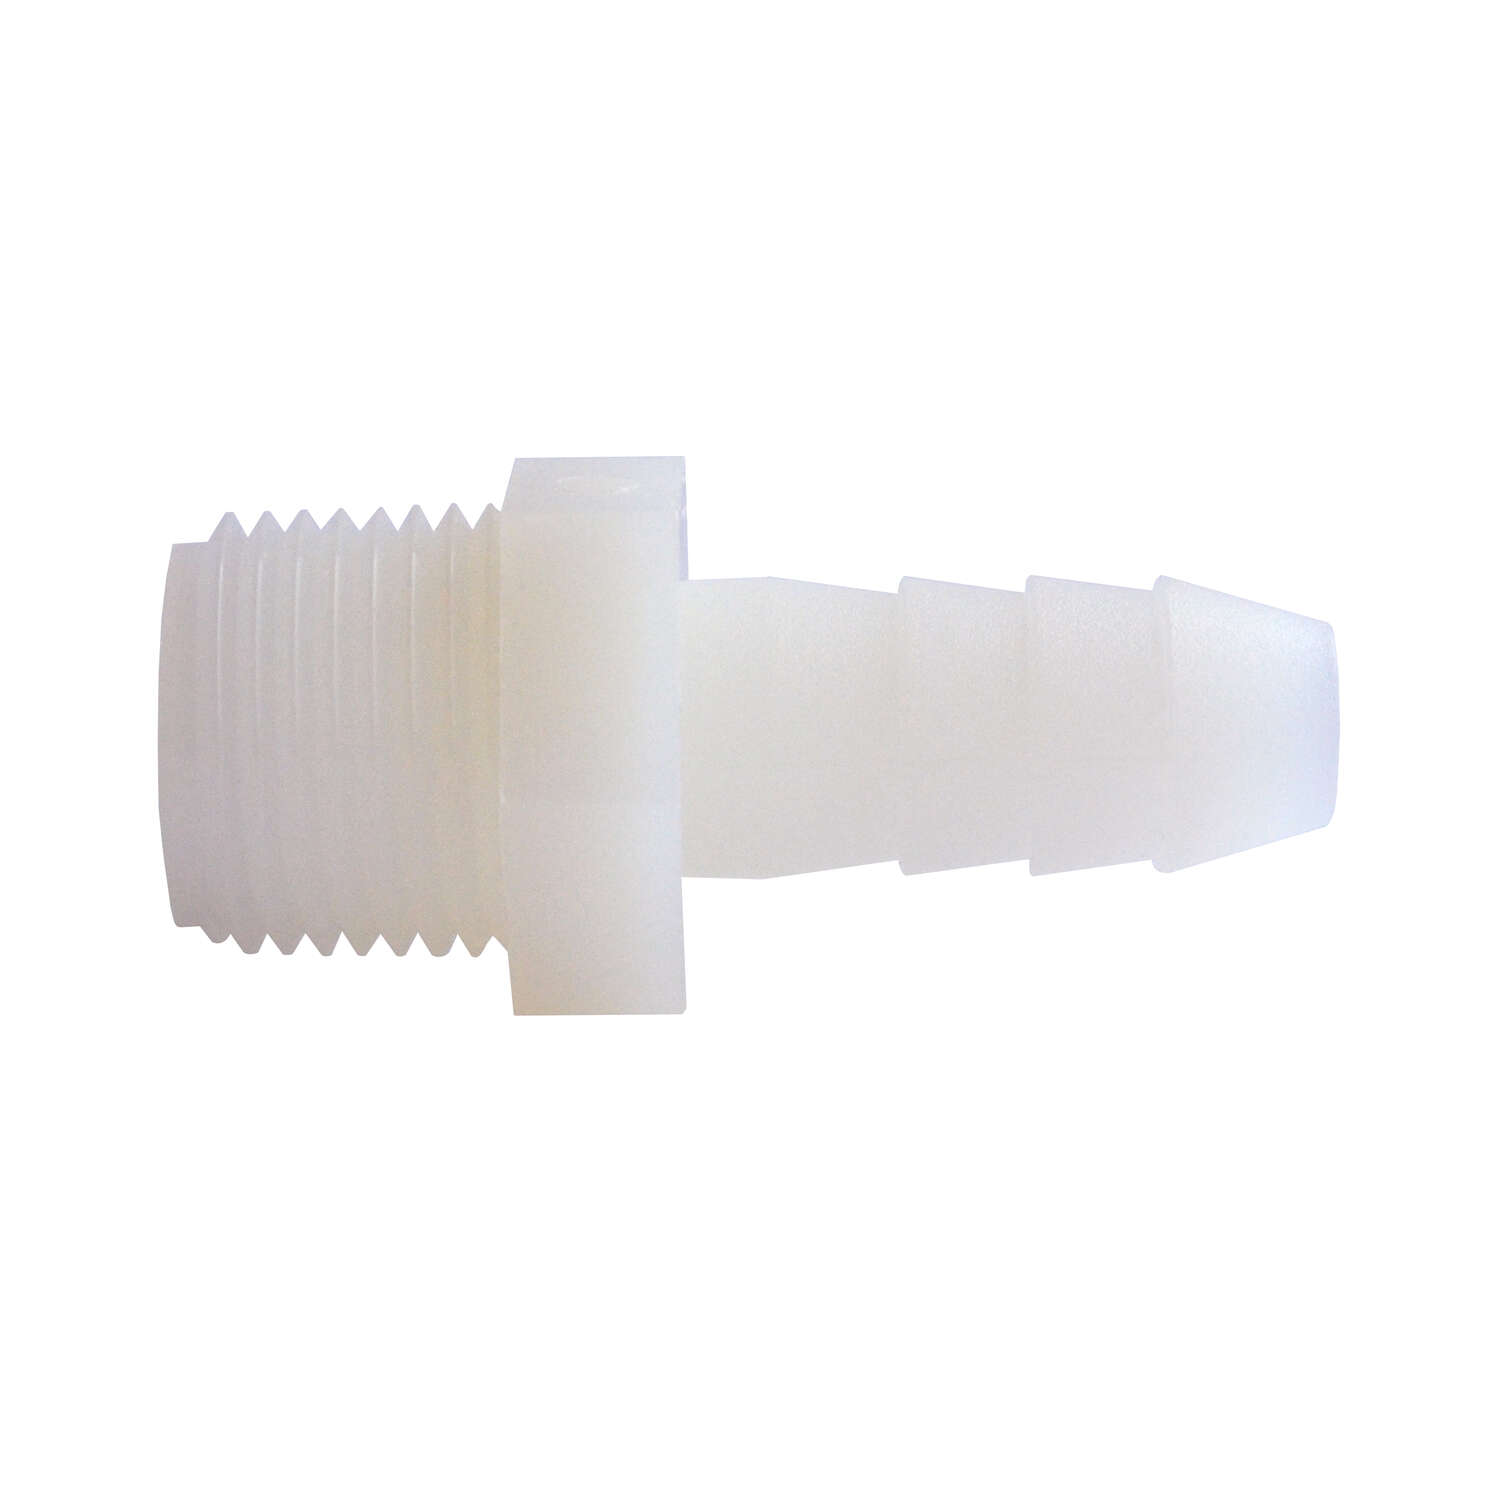 Green Leaf  Nylon  1/4 in. Dia. x 3/8 in. Dia. Adapter  1 pk